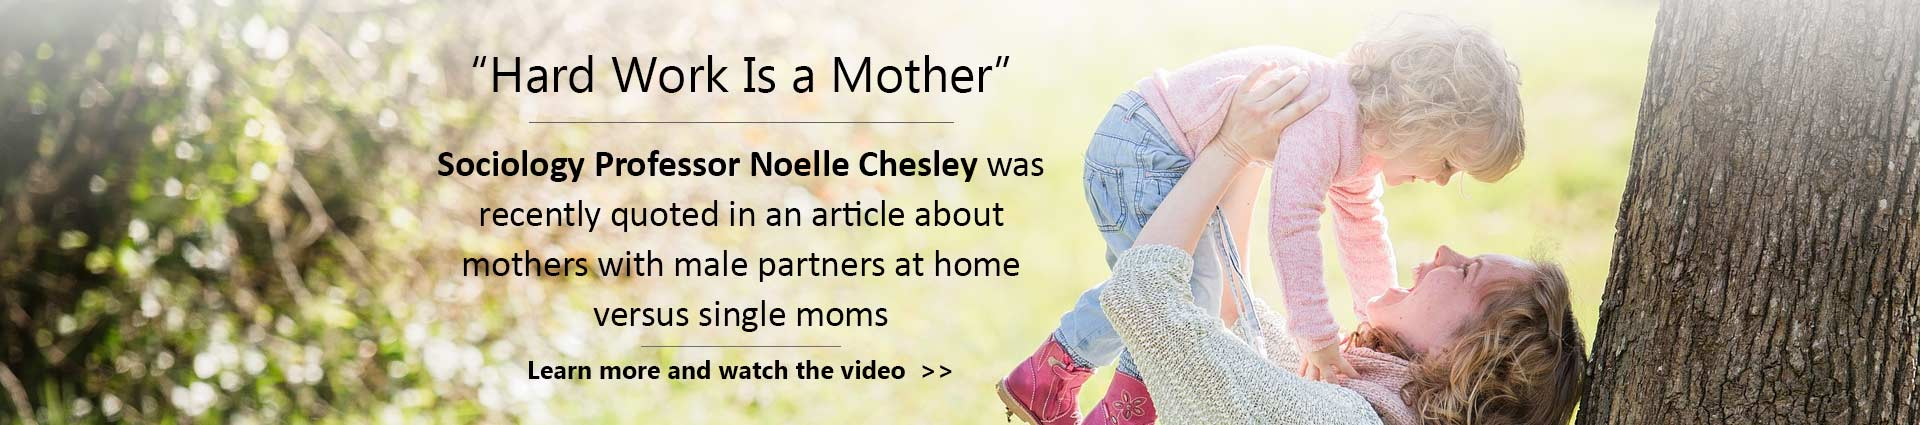 Hard Work is a Mother - Noelle Chesley